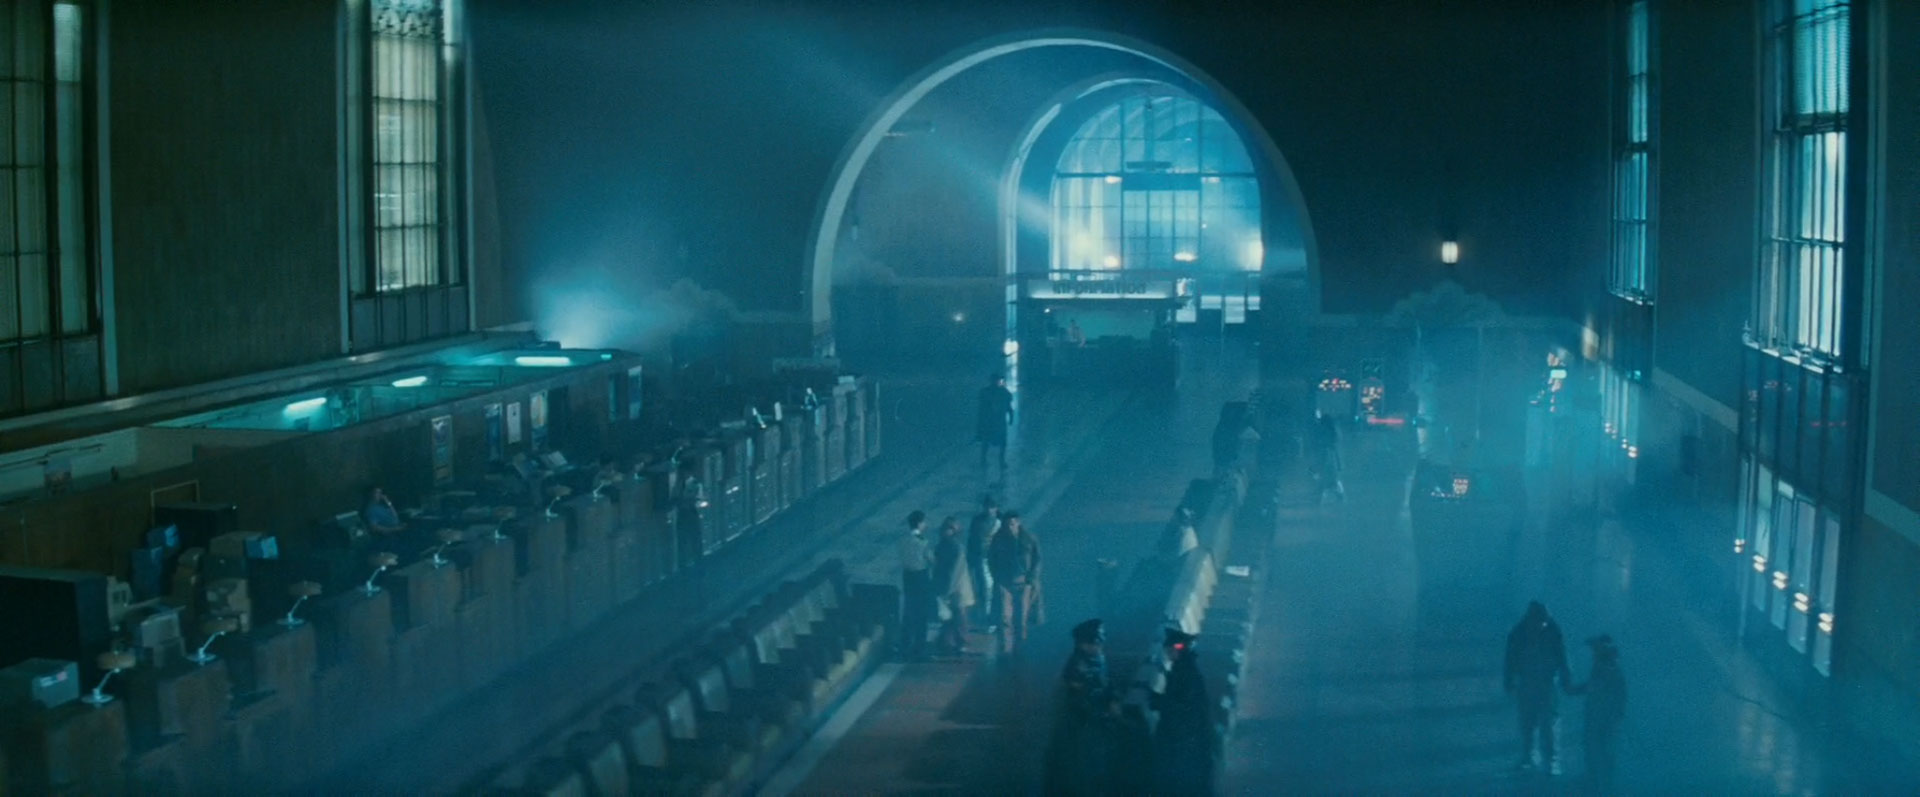 blade runner what is the future The blade runner sequel hits theatres in 2018 and a canadian, denis villeneuve, is directing it's been 34 years since ridley scott released his film about an ex-cop (harrison ford) tasked with .